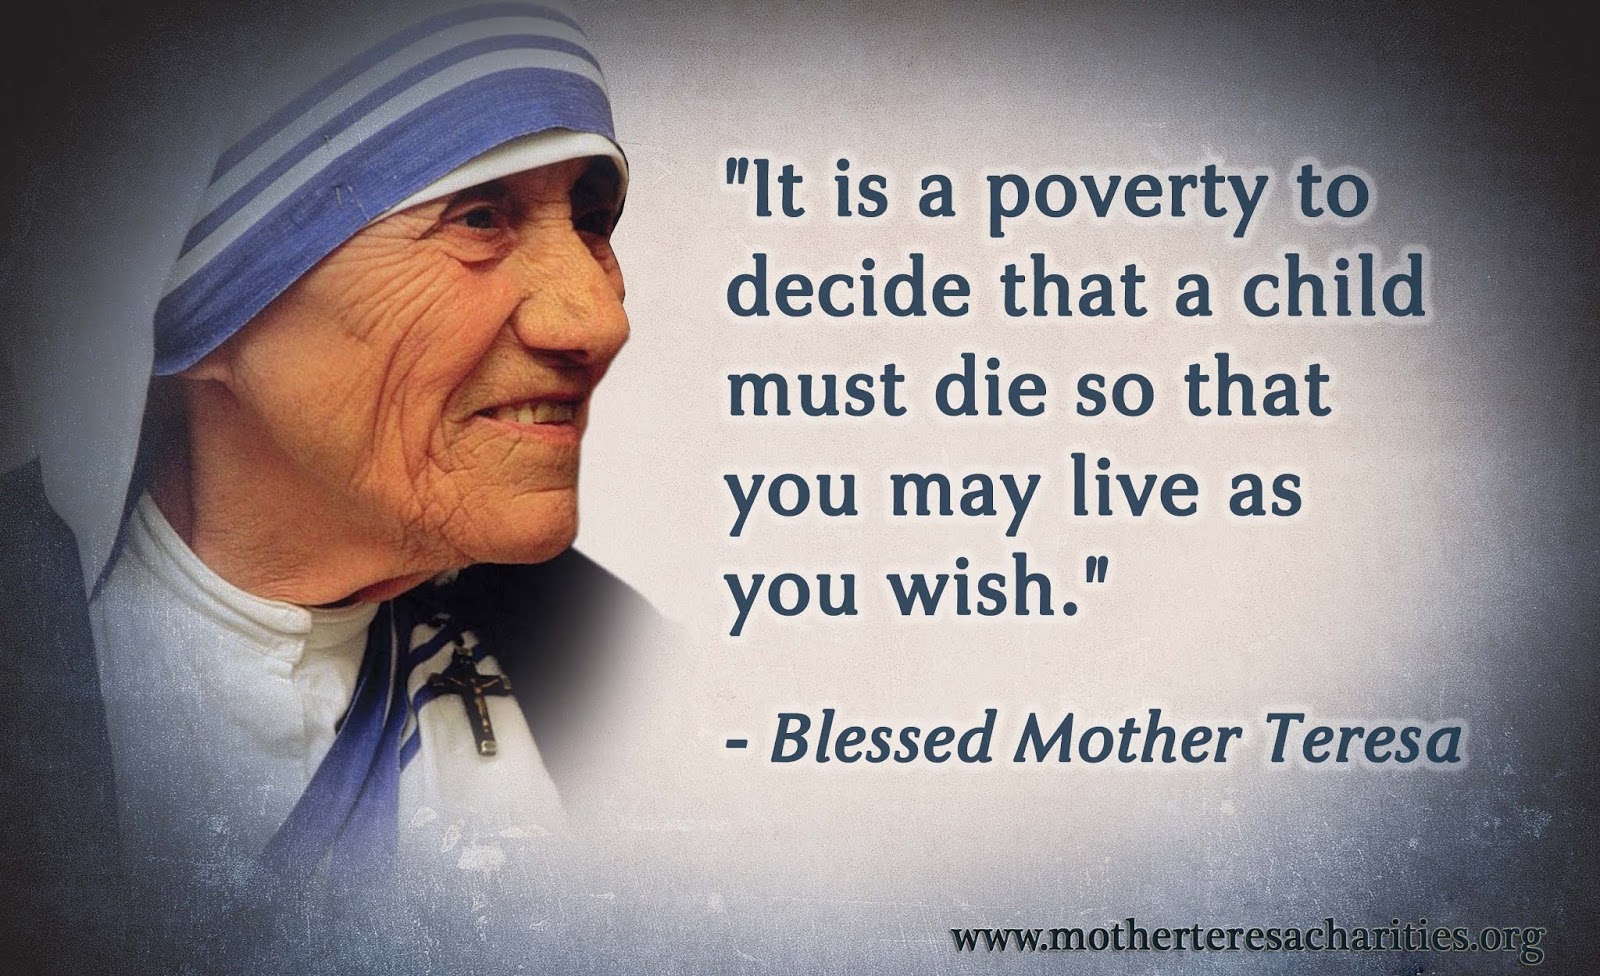 Mother Teresa Charitable Trust 080418